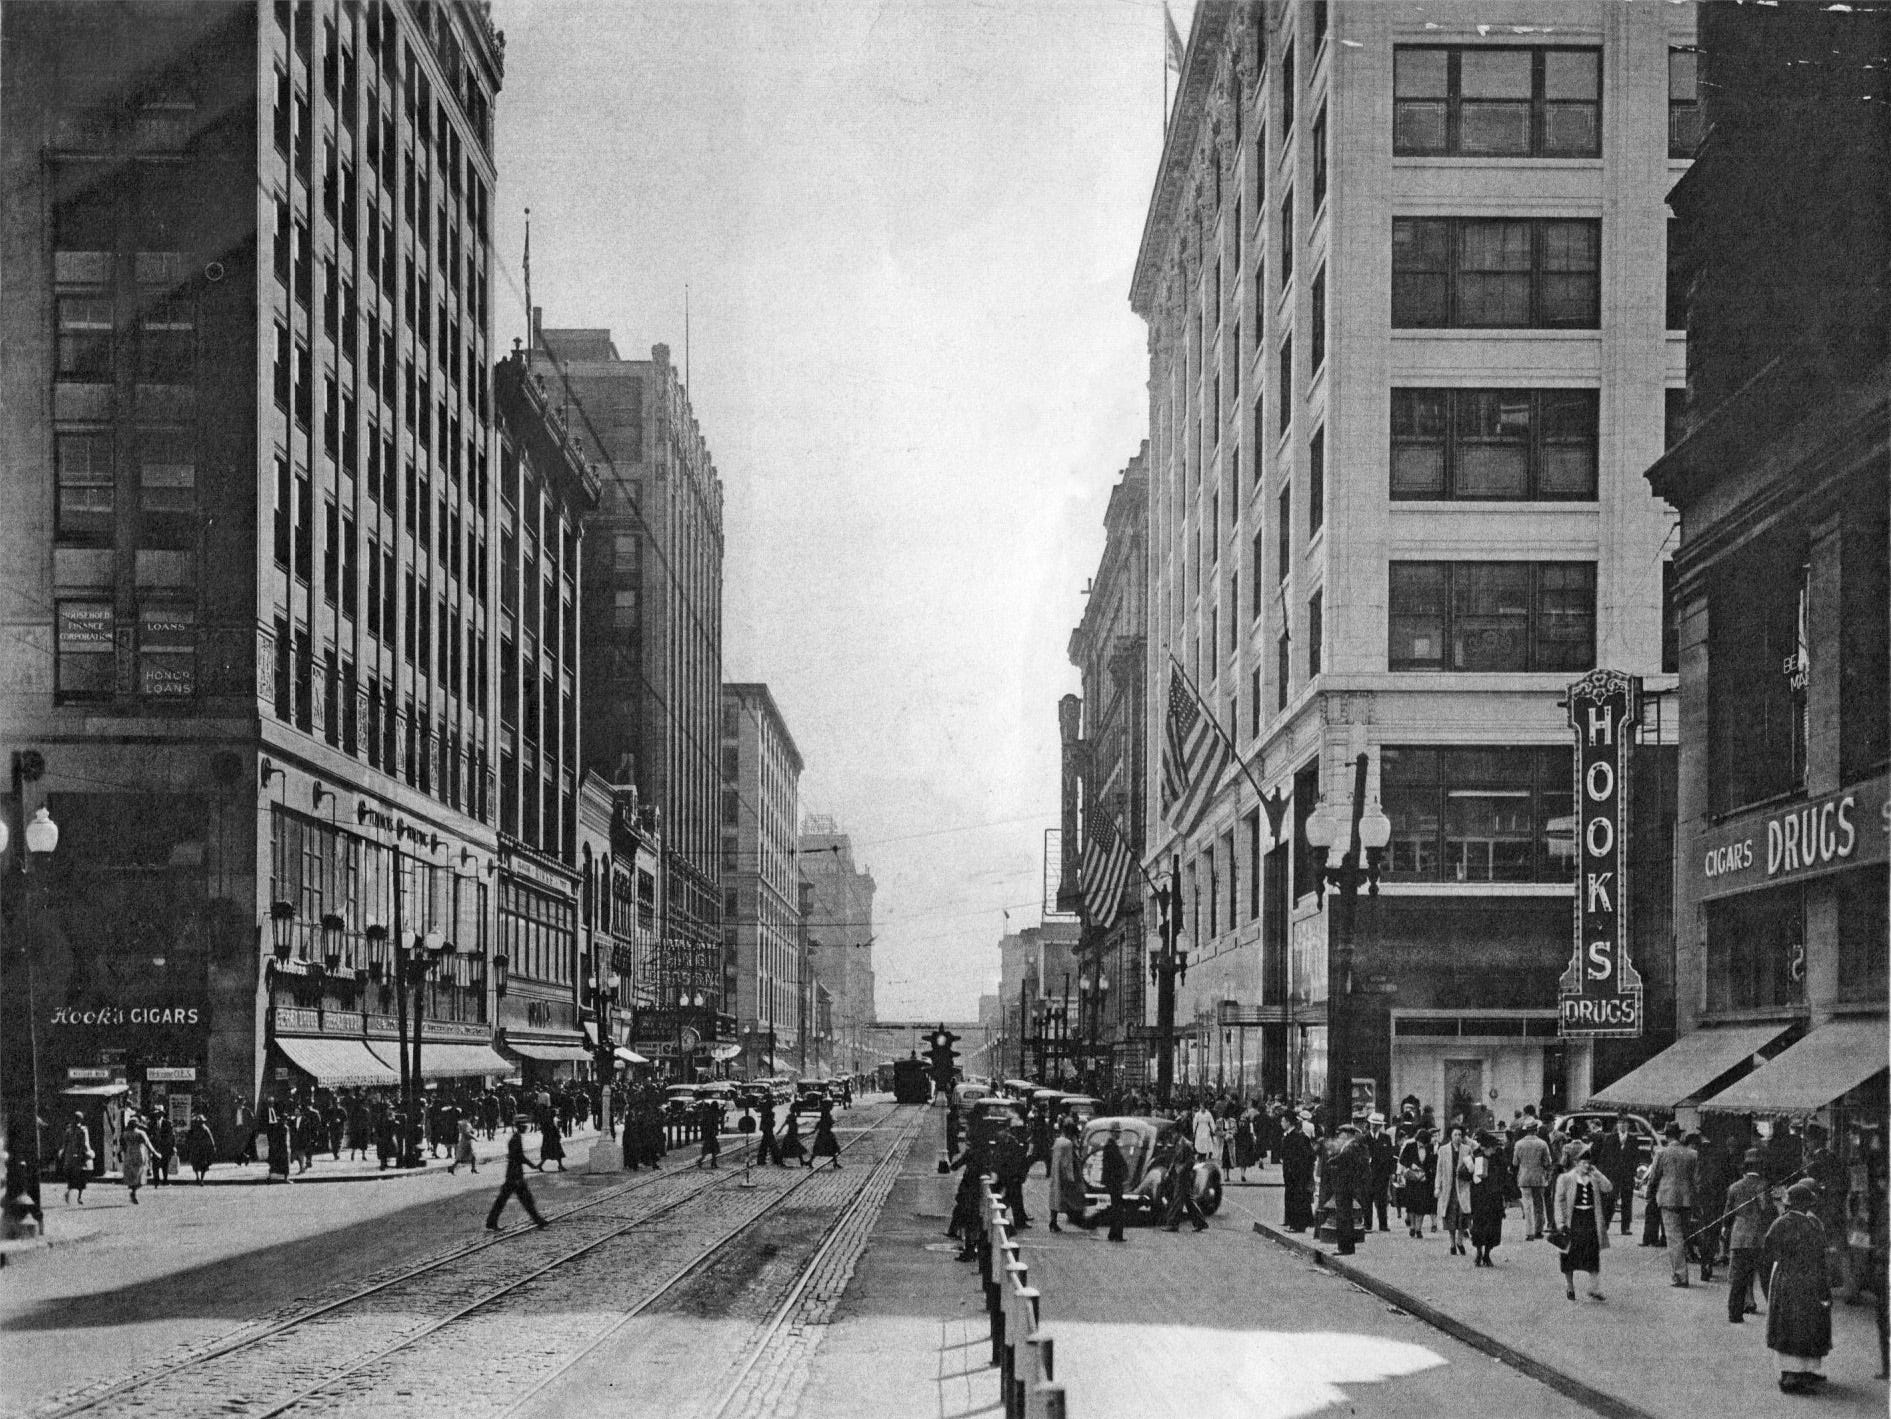 Illinois Street looking south just north of Market Street in the late 1940s.